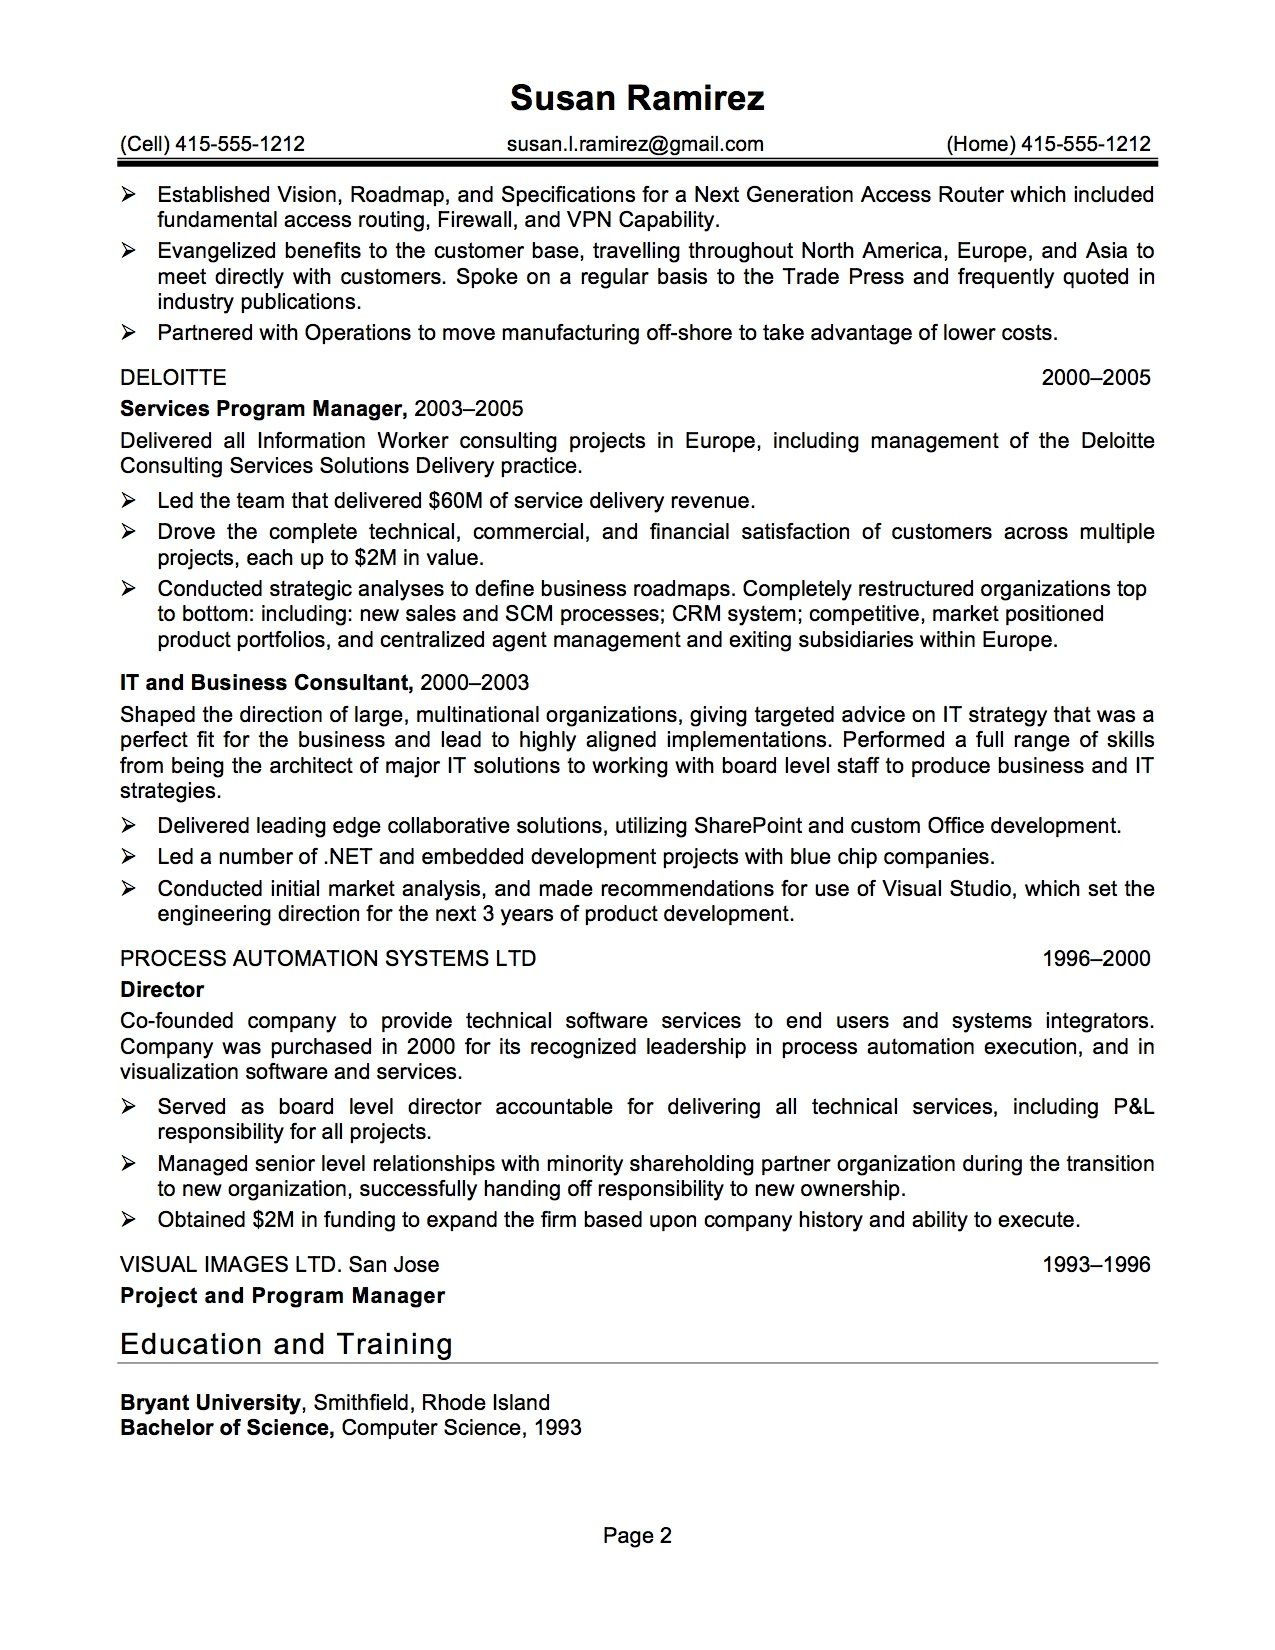 clarkson university senior computer science resume sample http